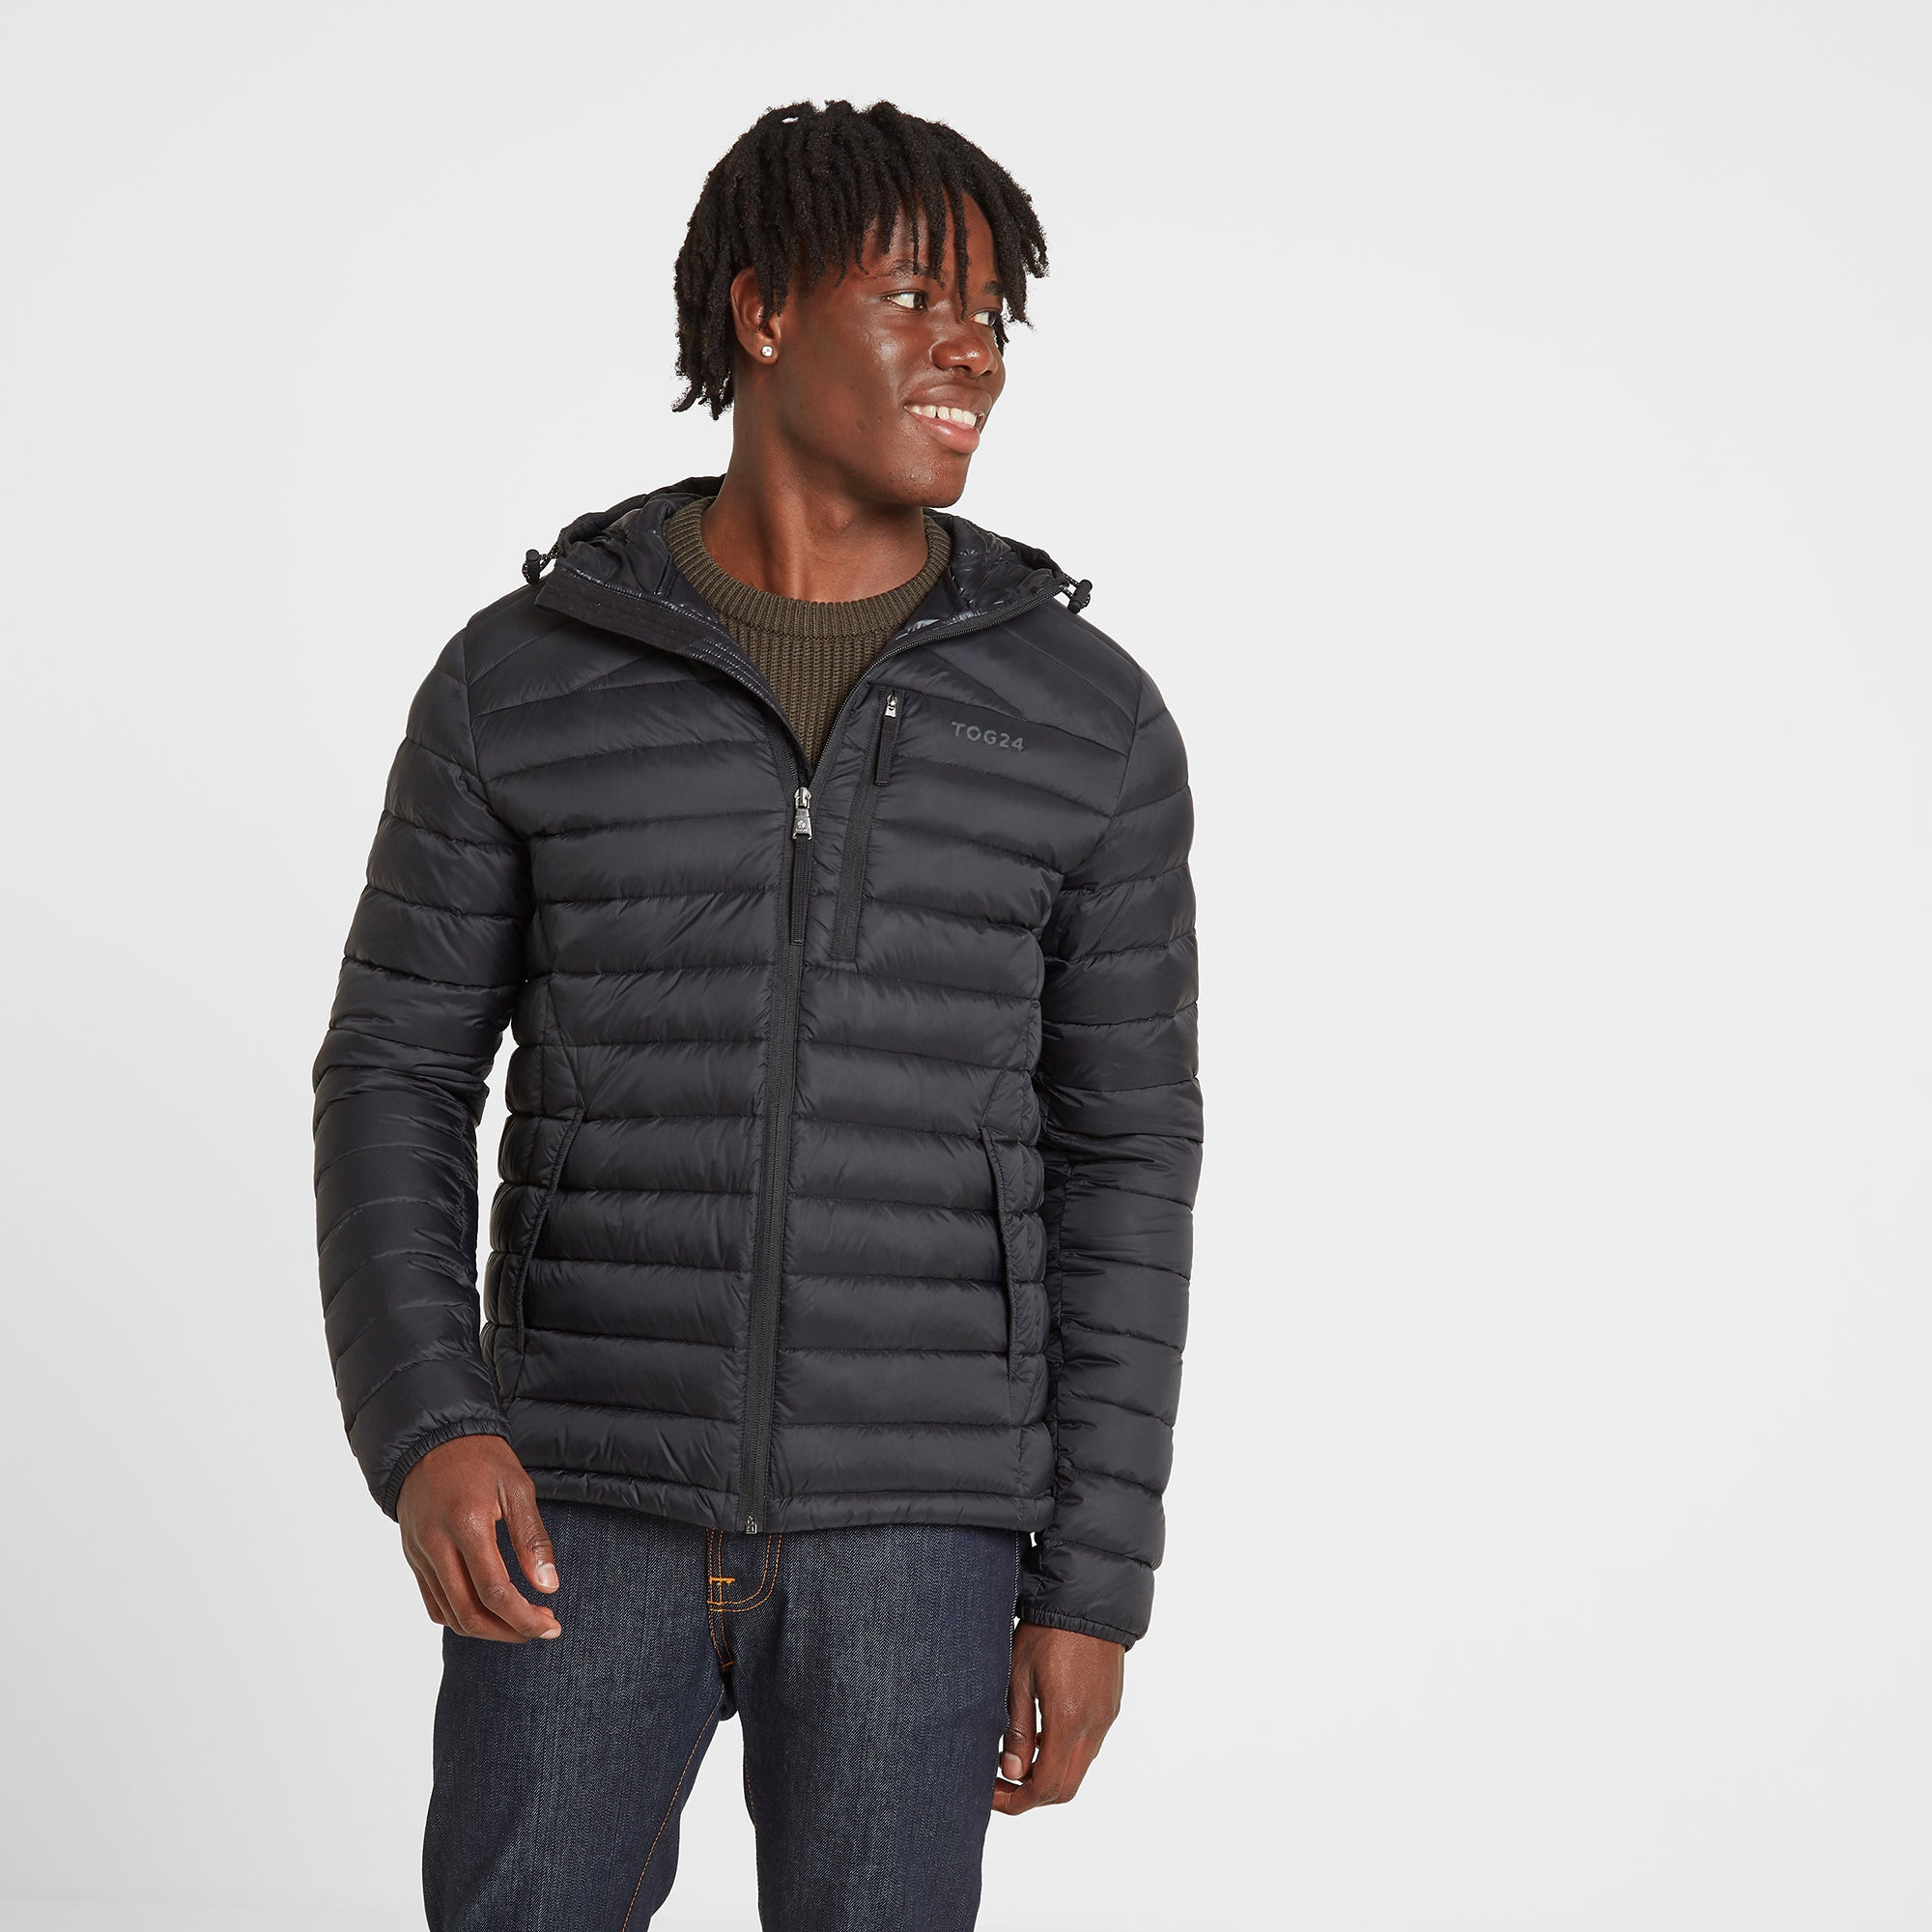 Drax Mens Hooded Down Jacket - Black